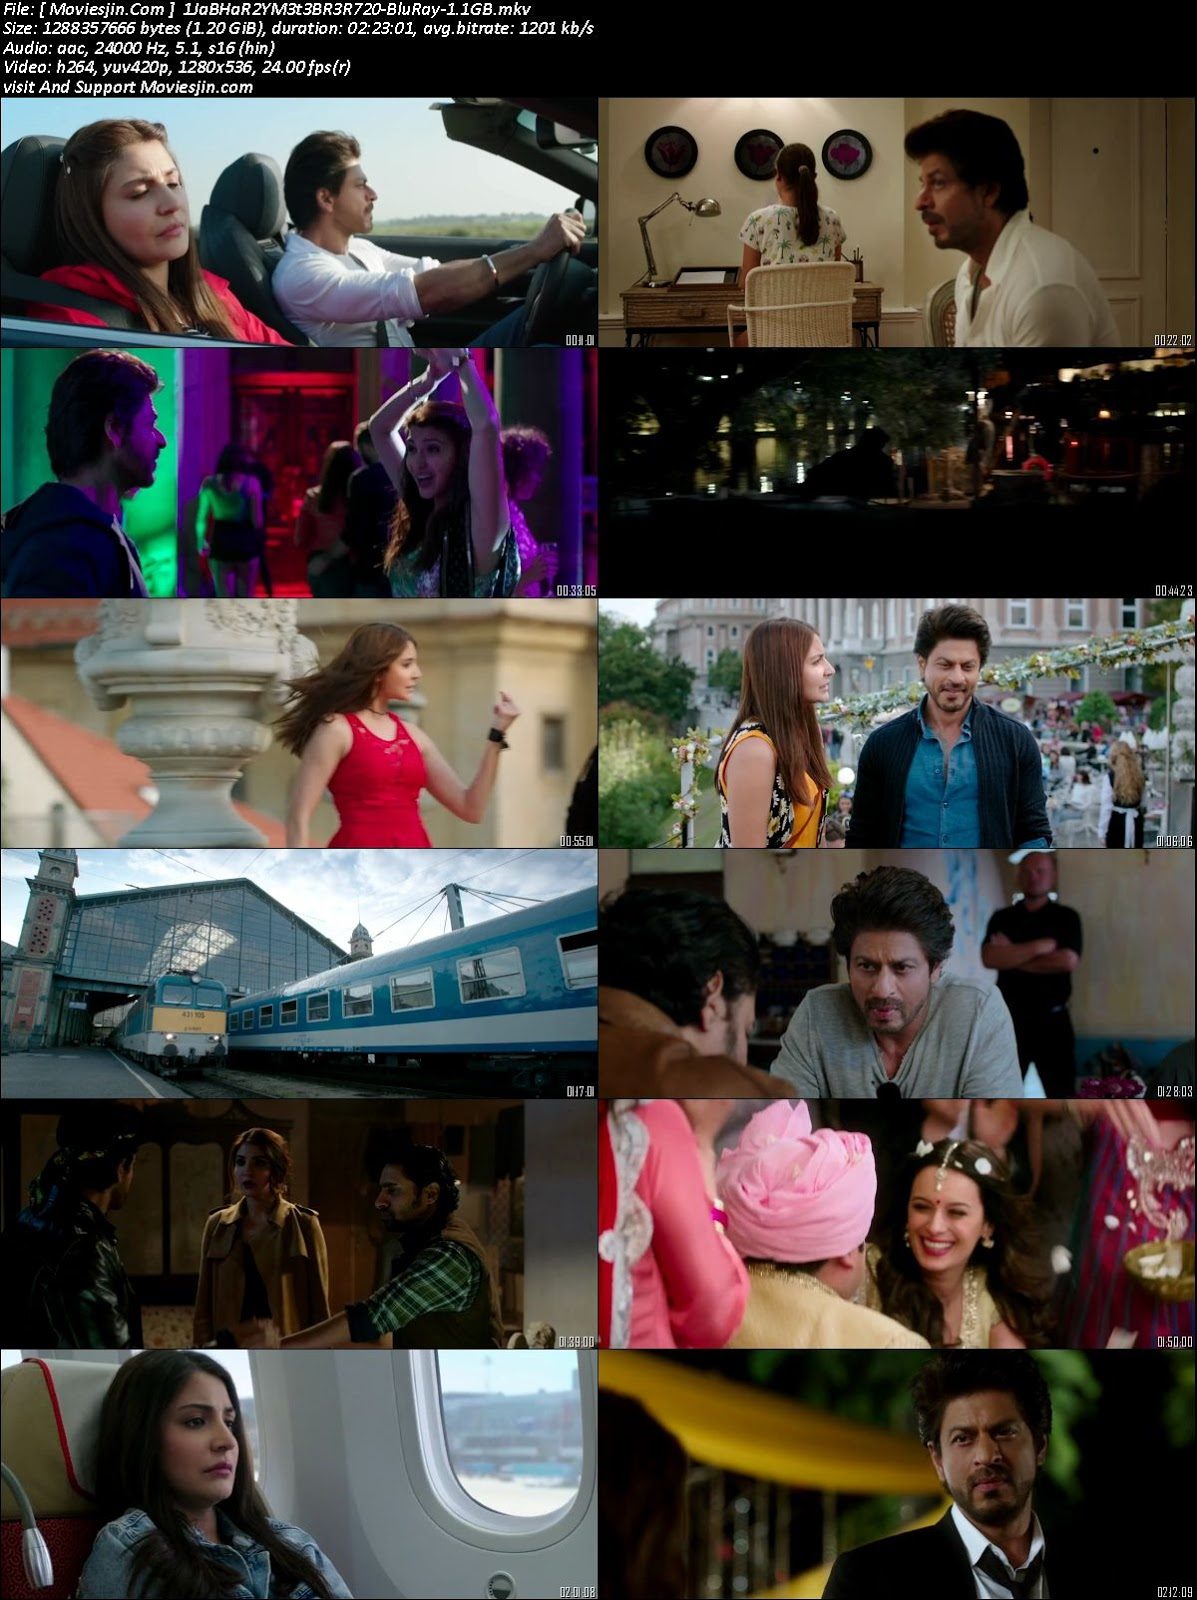 Watch Online Jab Harry met Sejal 2017 BluRay 400MB Full Hindi Movie 480p Download Full Movie Download Khatrimaza, free download 9xmovies,